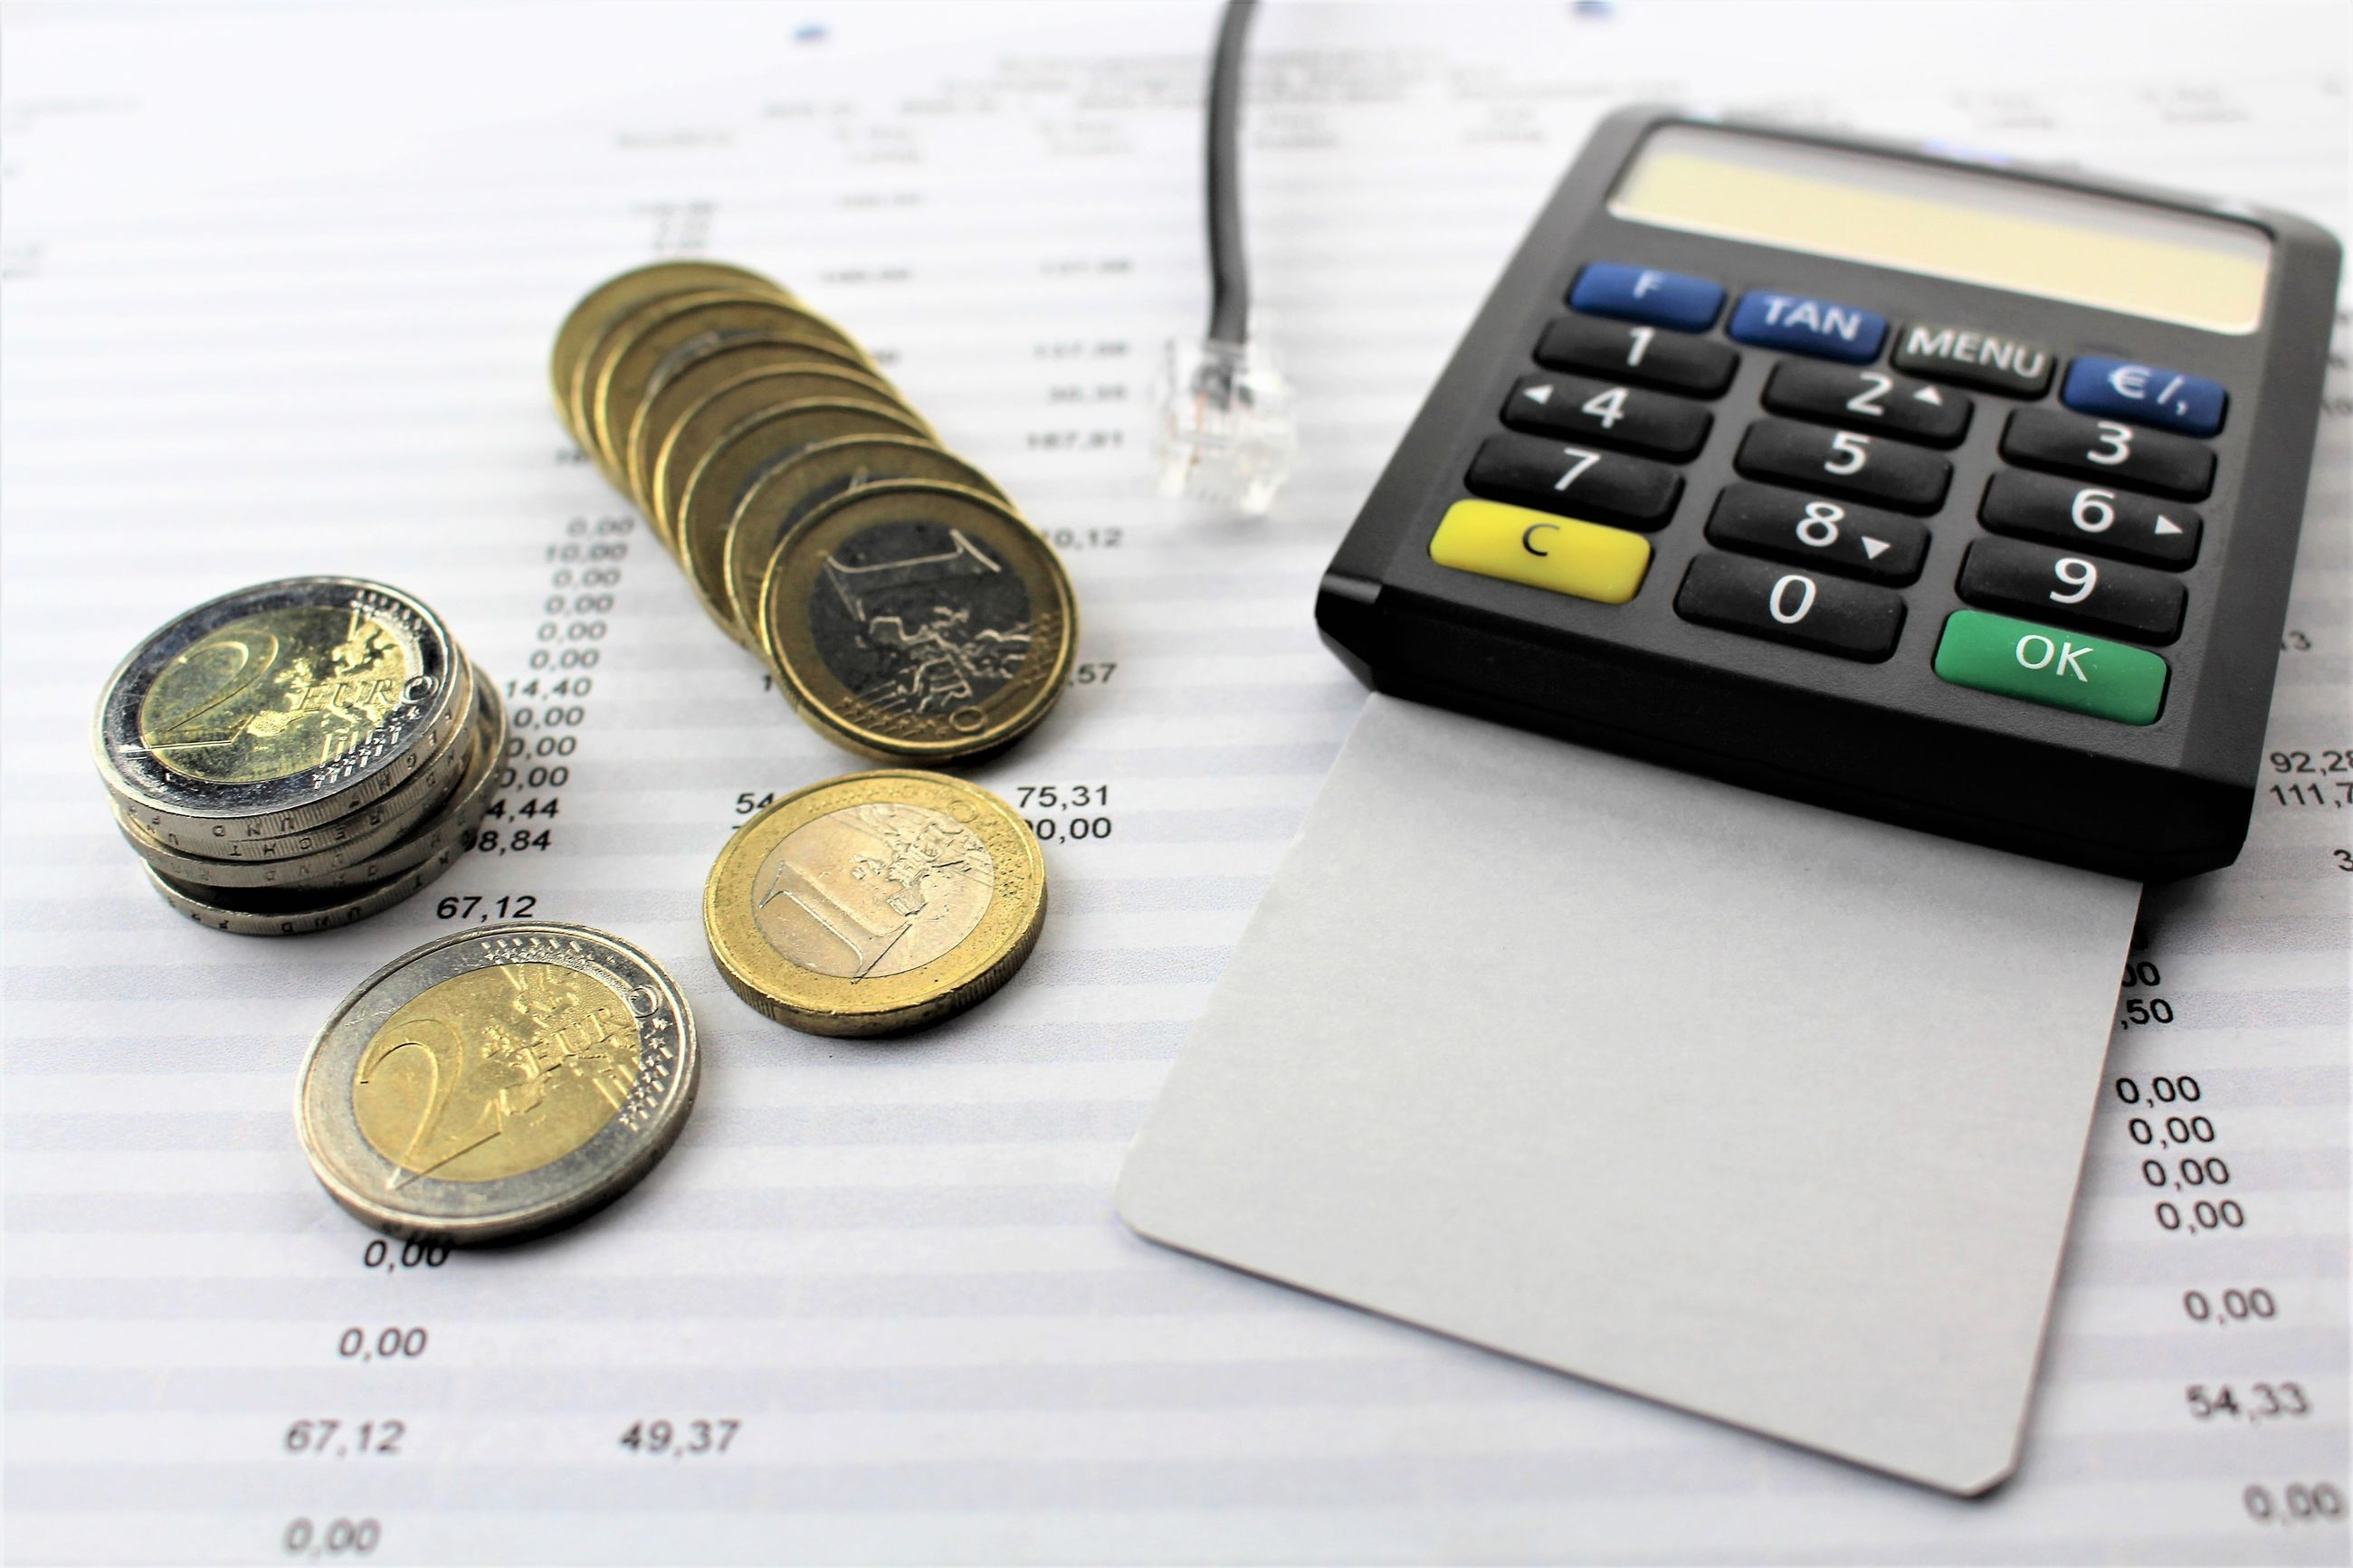 Close-up of bill with calculator and coins on table